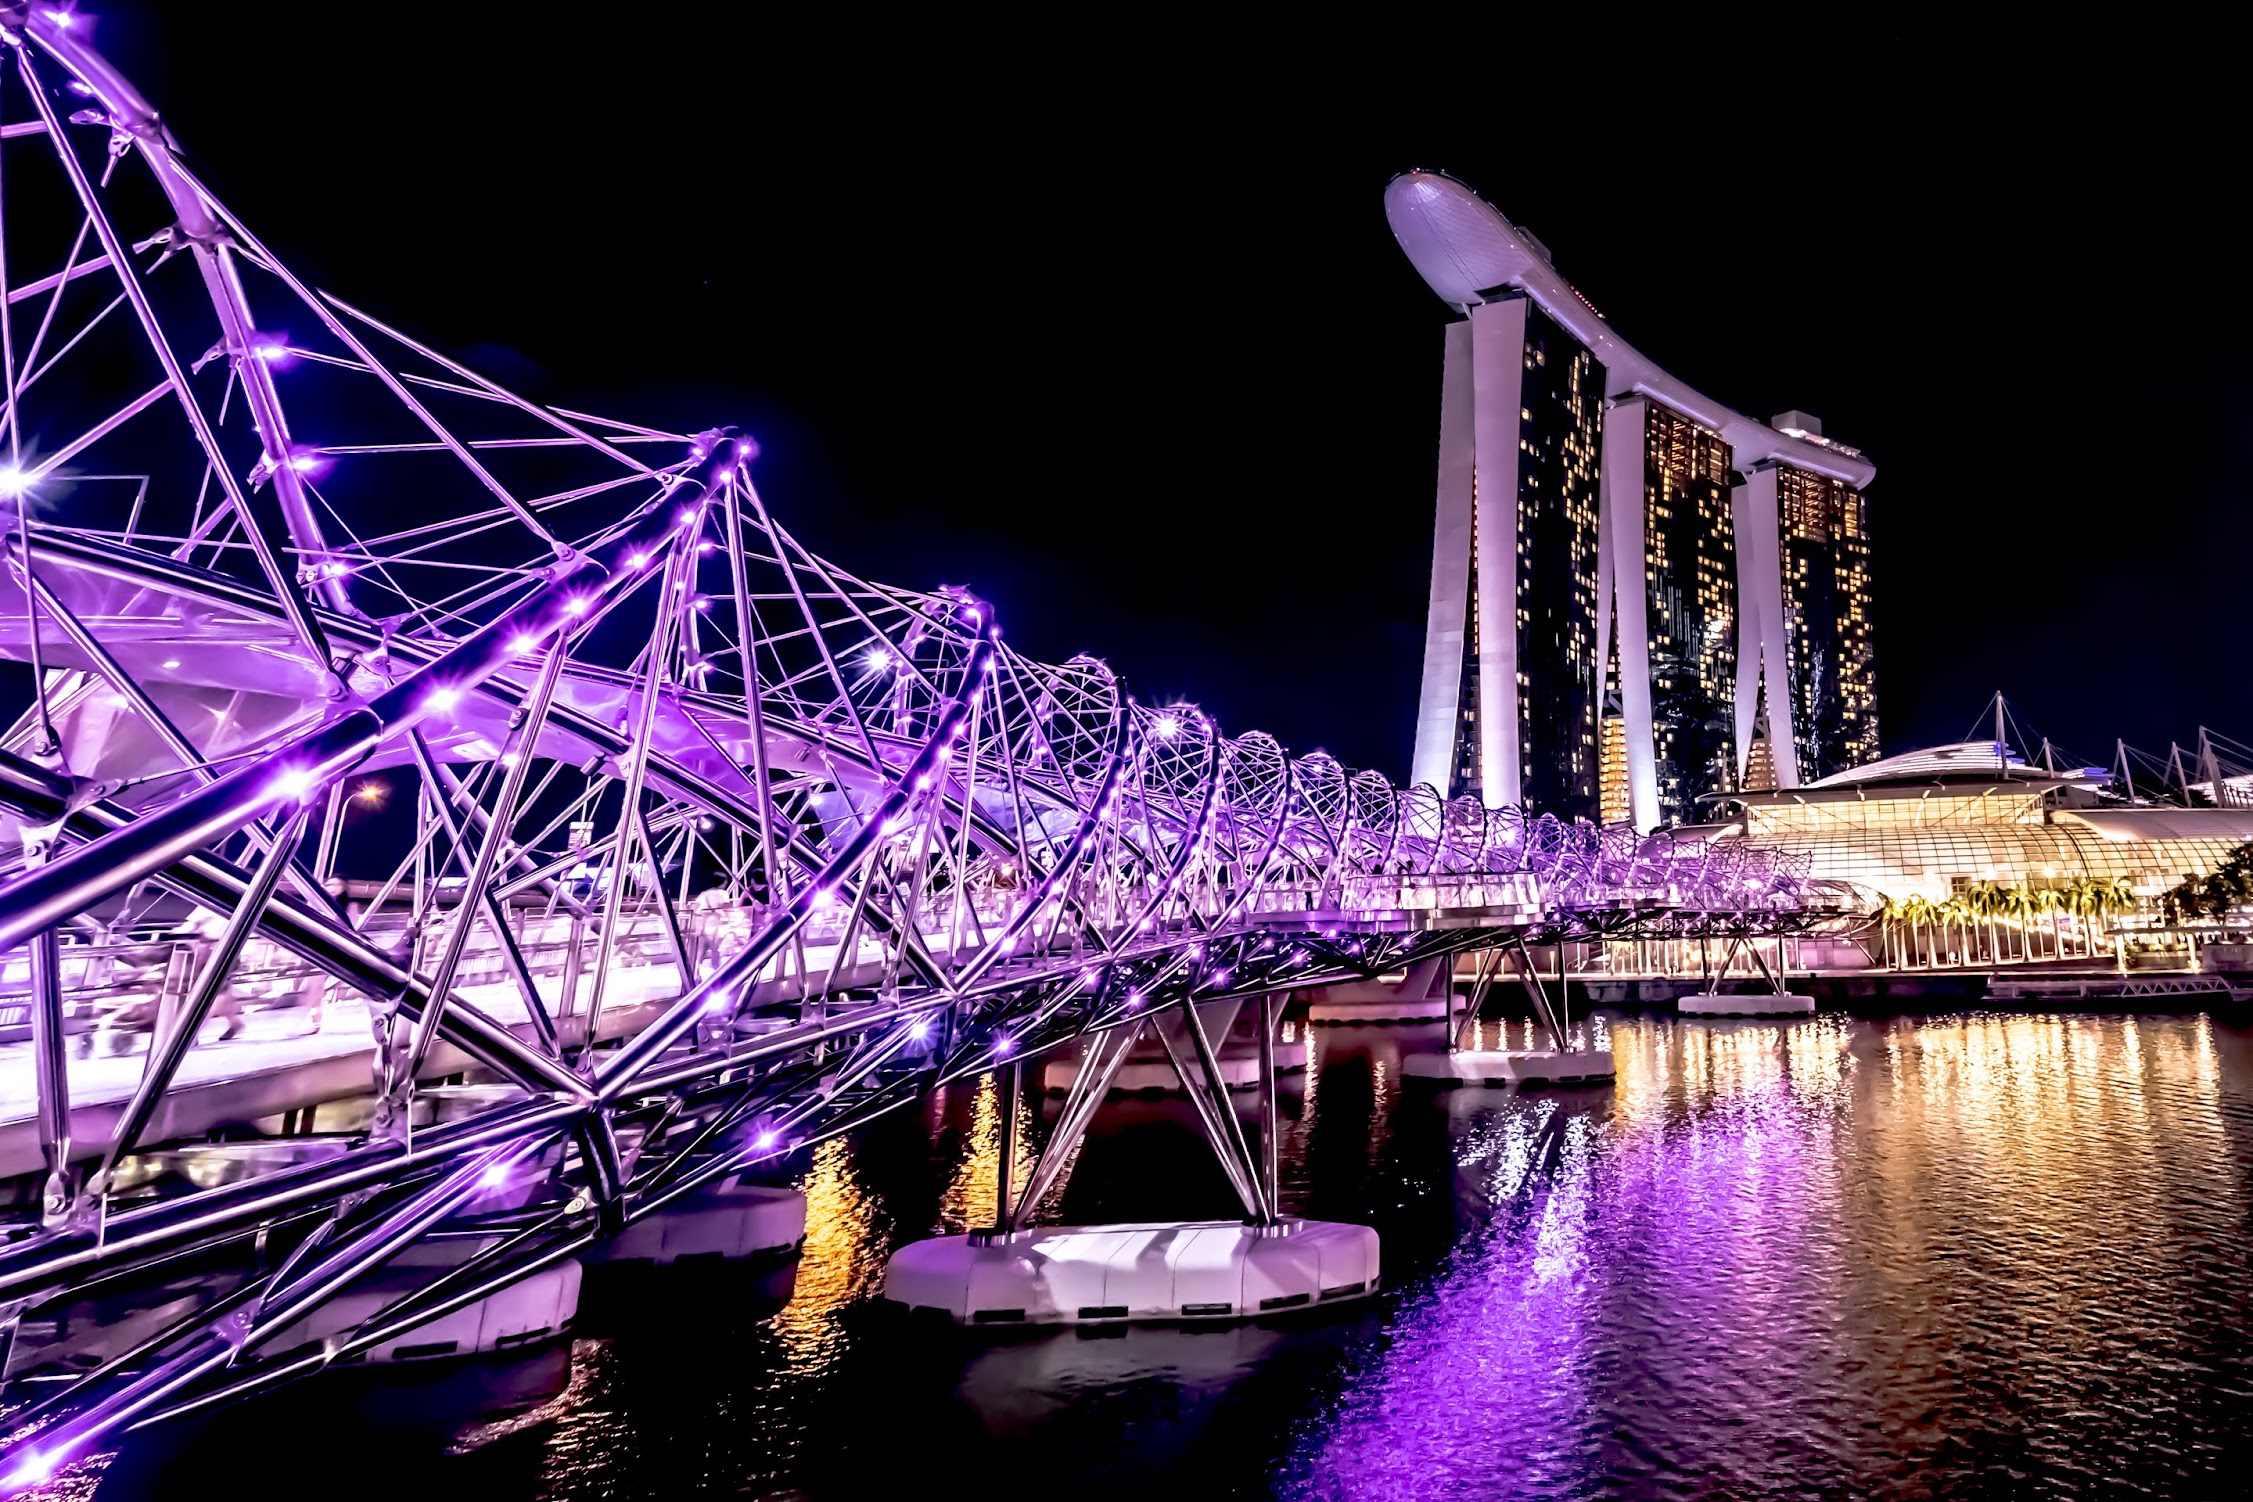 Singapore Marina bay Sands Helix Bridge night view3